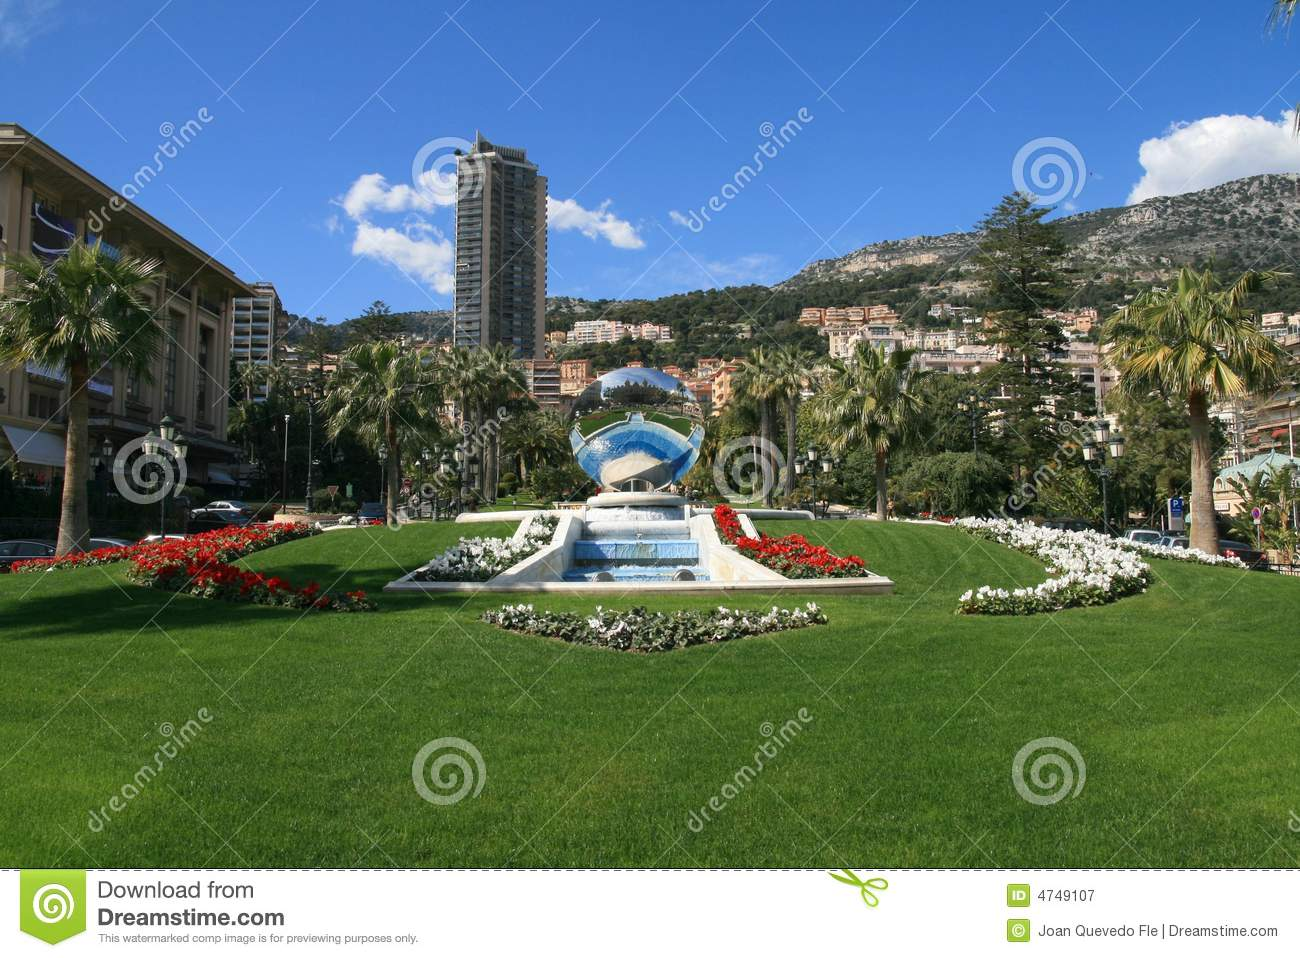 Royalty Free Stock Photography Monaco Image4749107 on oceanographic museum monte carlo